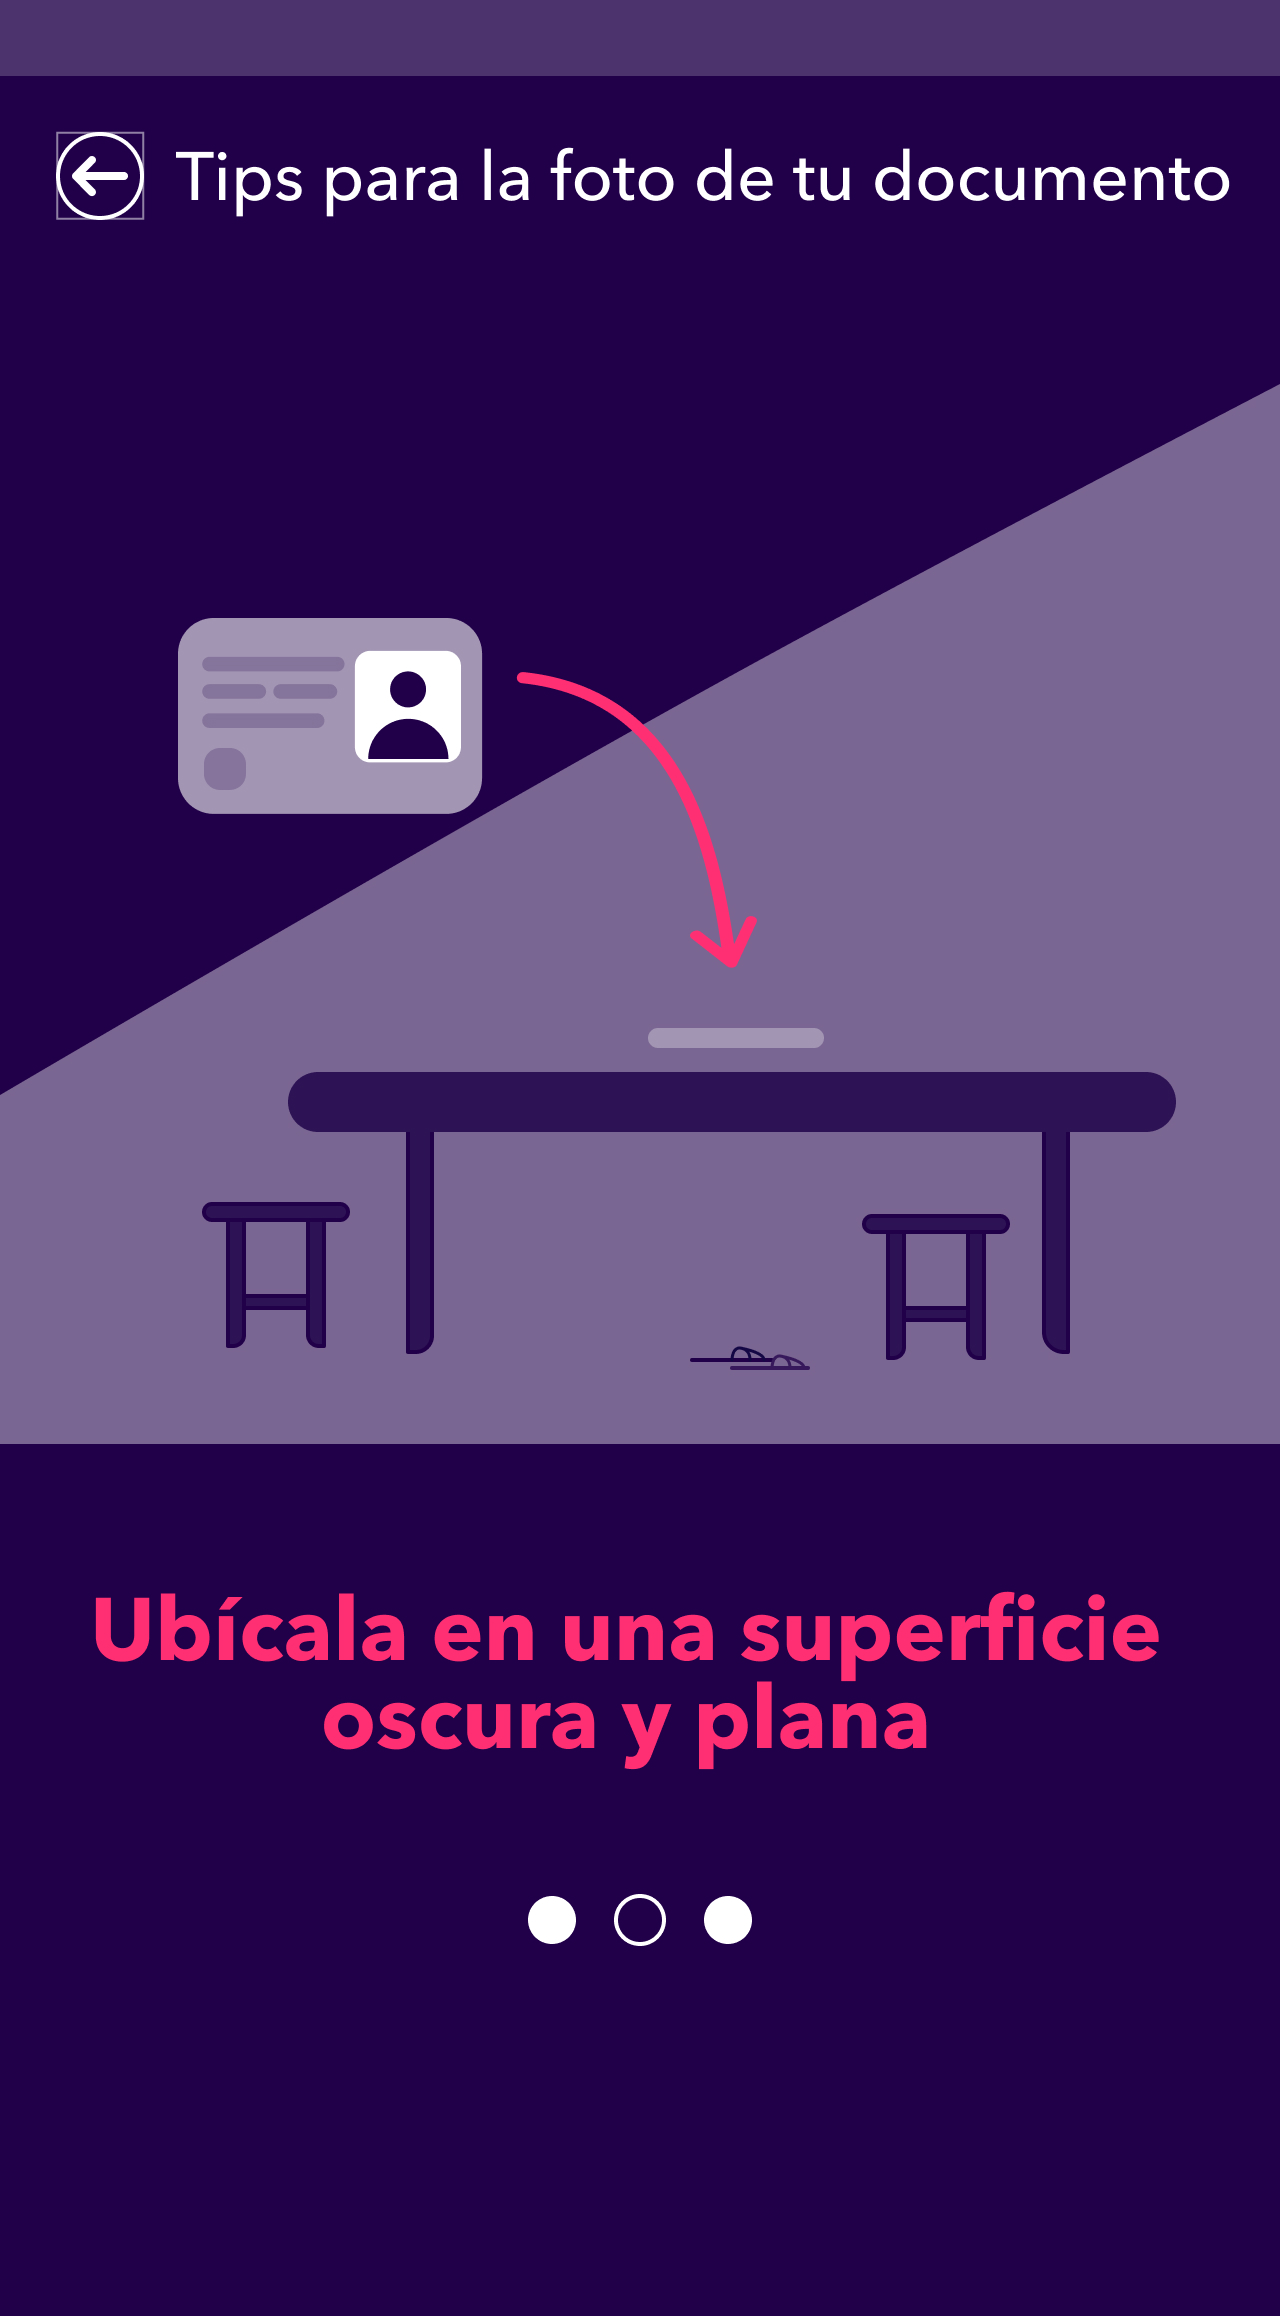 seguridad_biometria_tips_copy_23.5.jpg